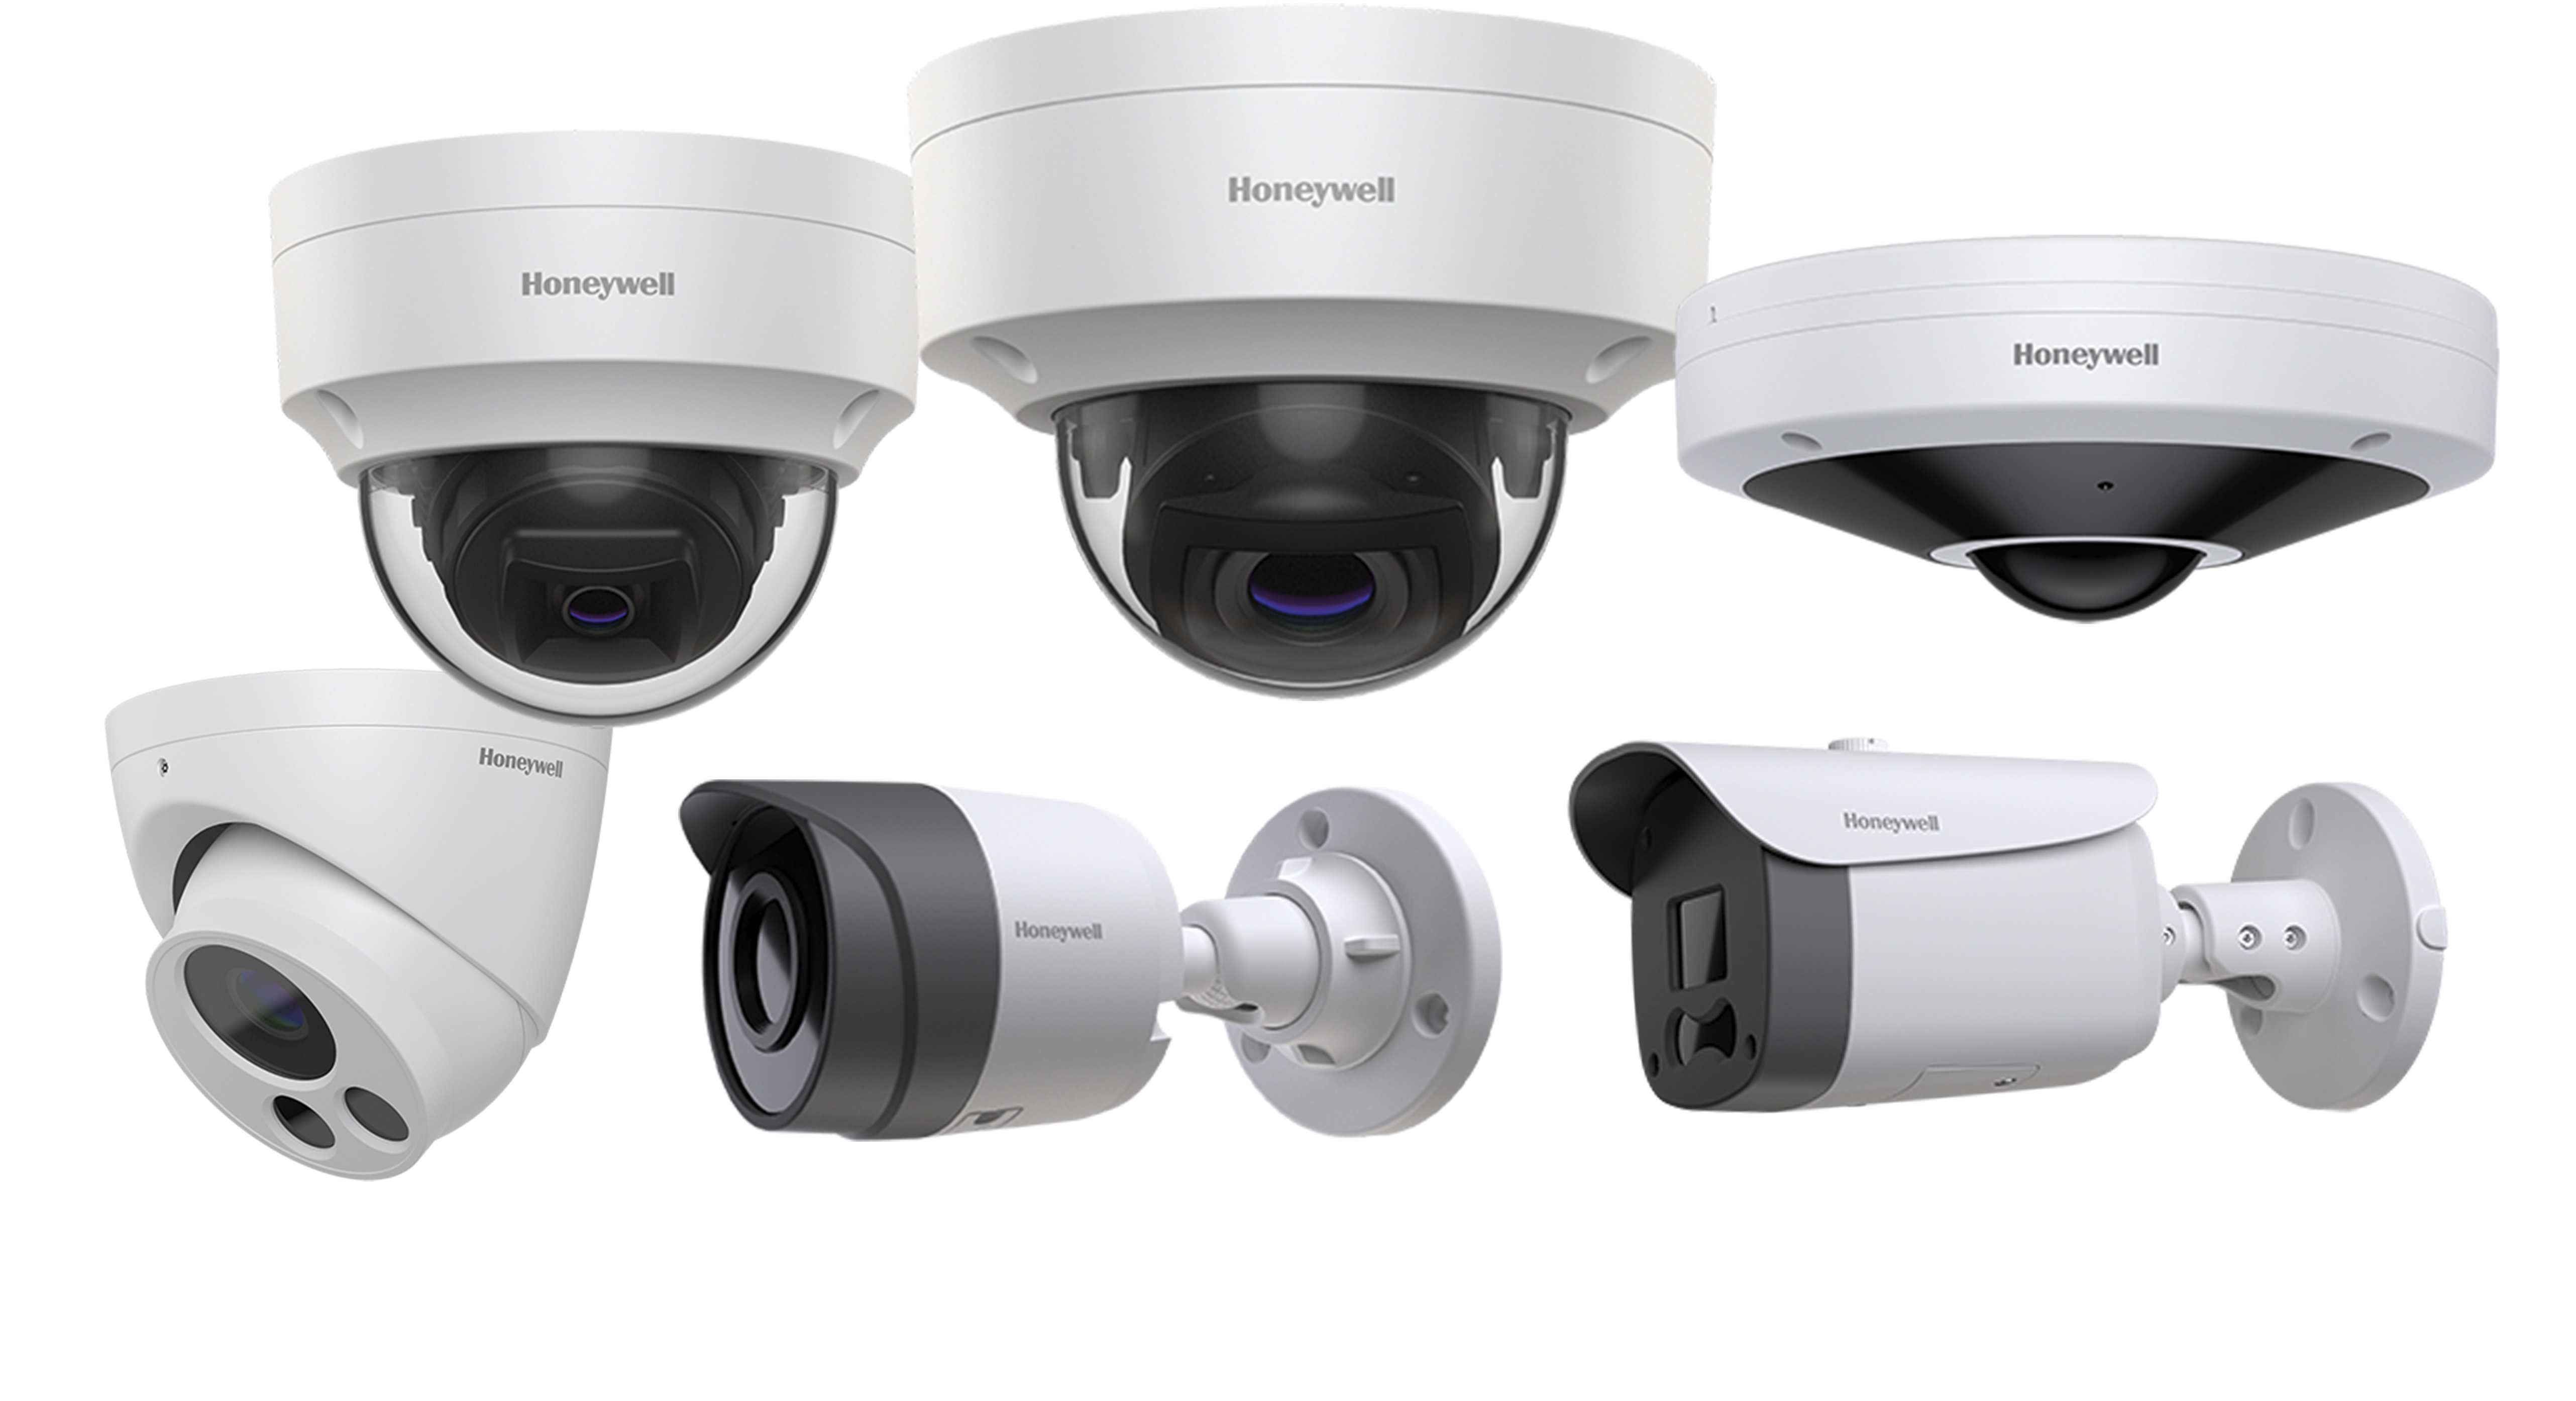 Honeywell 30 Series IP Cameras Improves Data and Video Protection